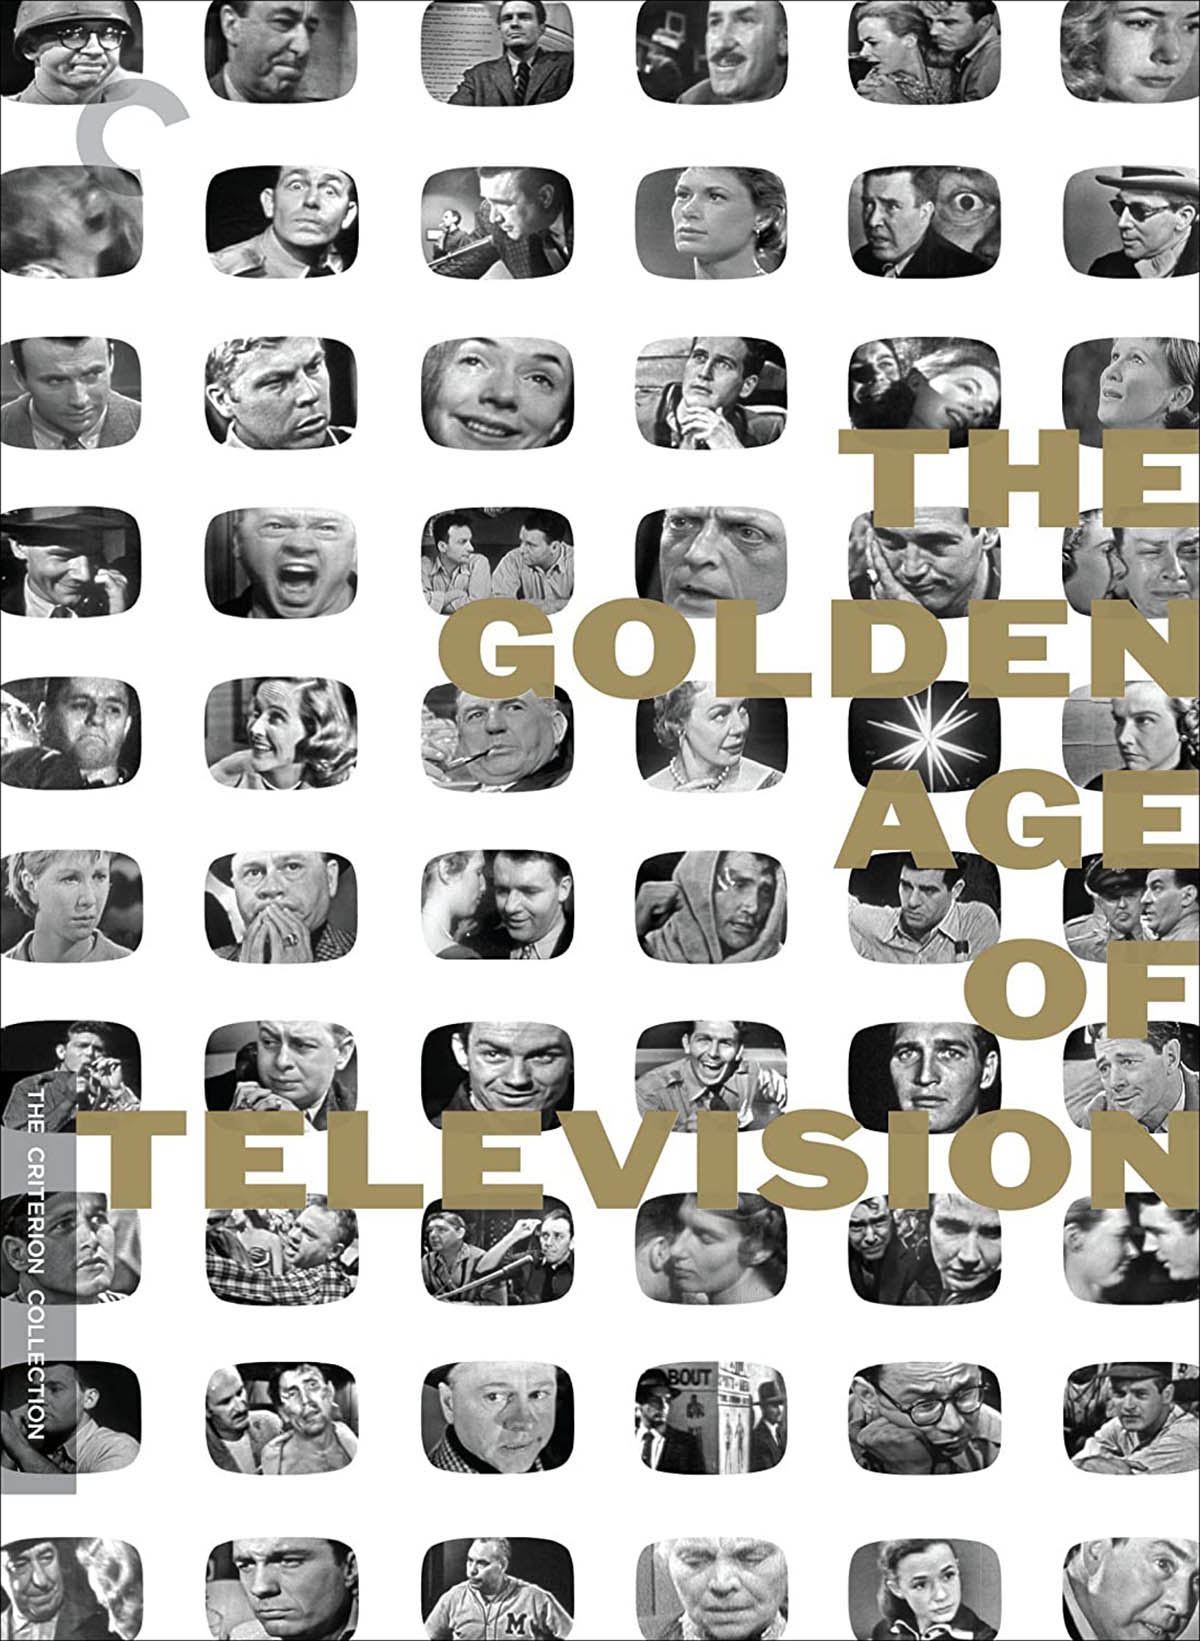 The Golden Age of Television